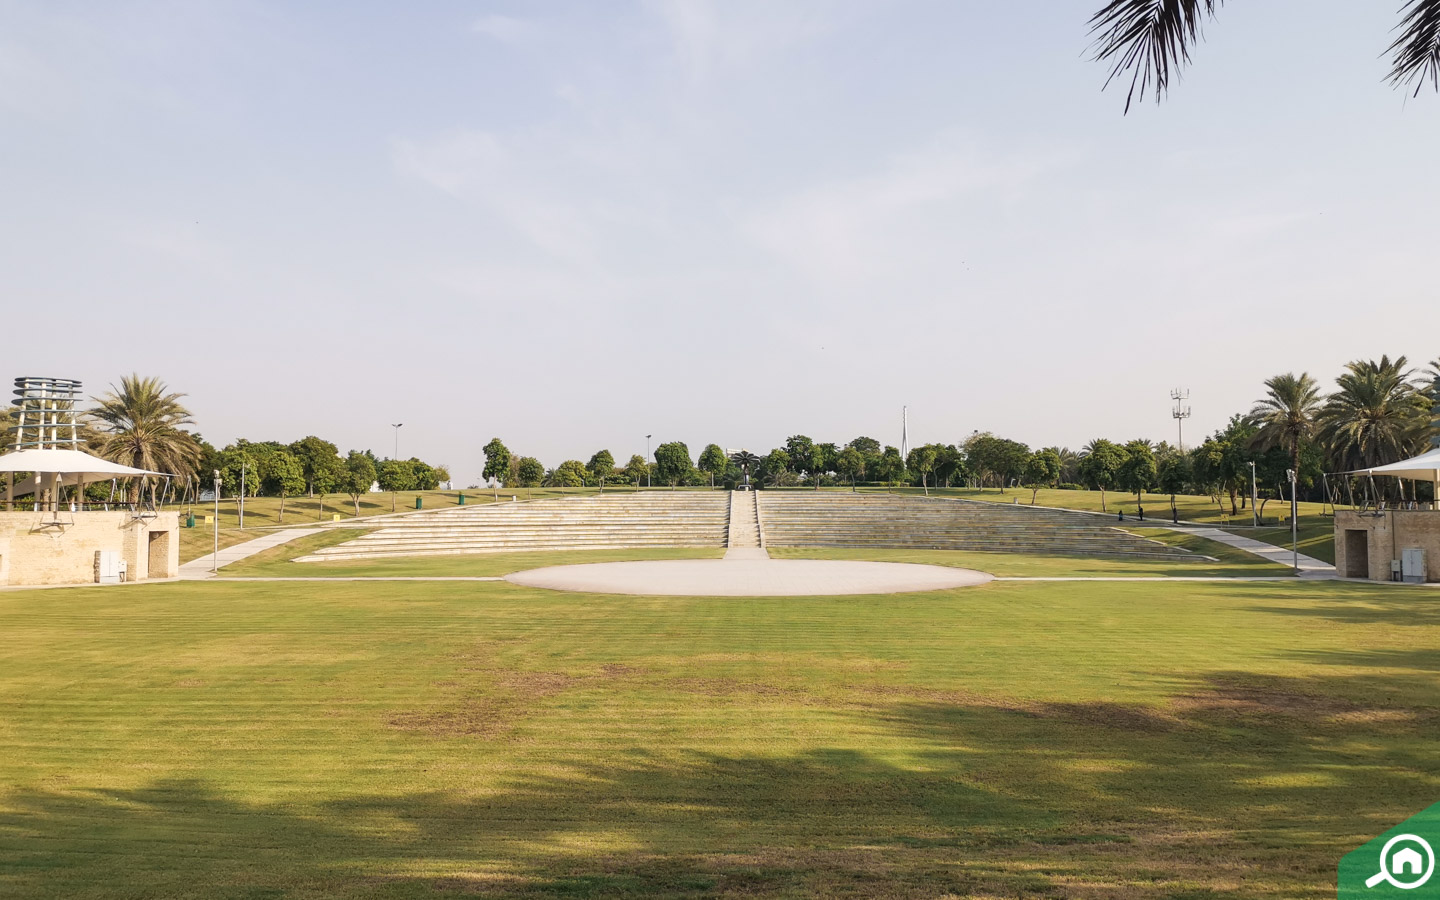 Amphitheatre at Zabeel Park in Dubai